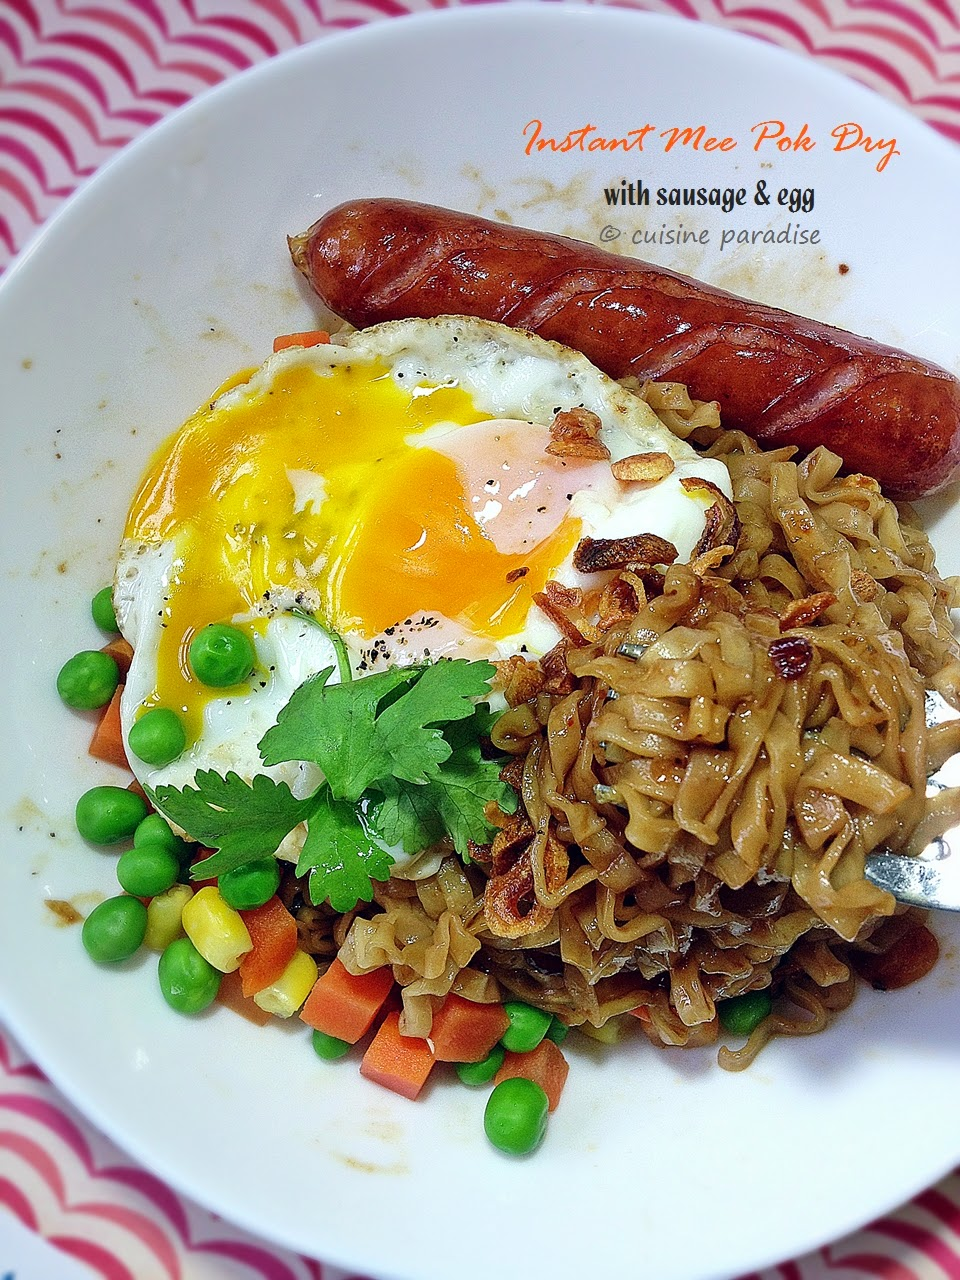 how to cook egg in instant noodles